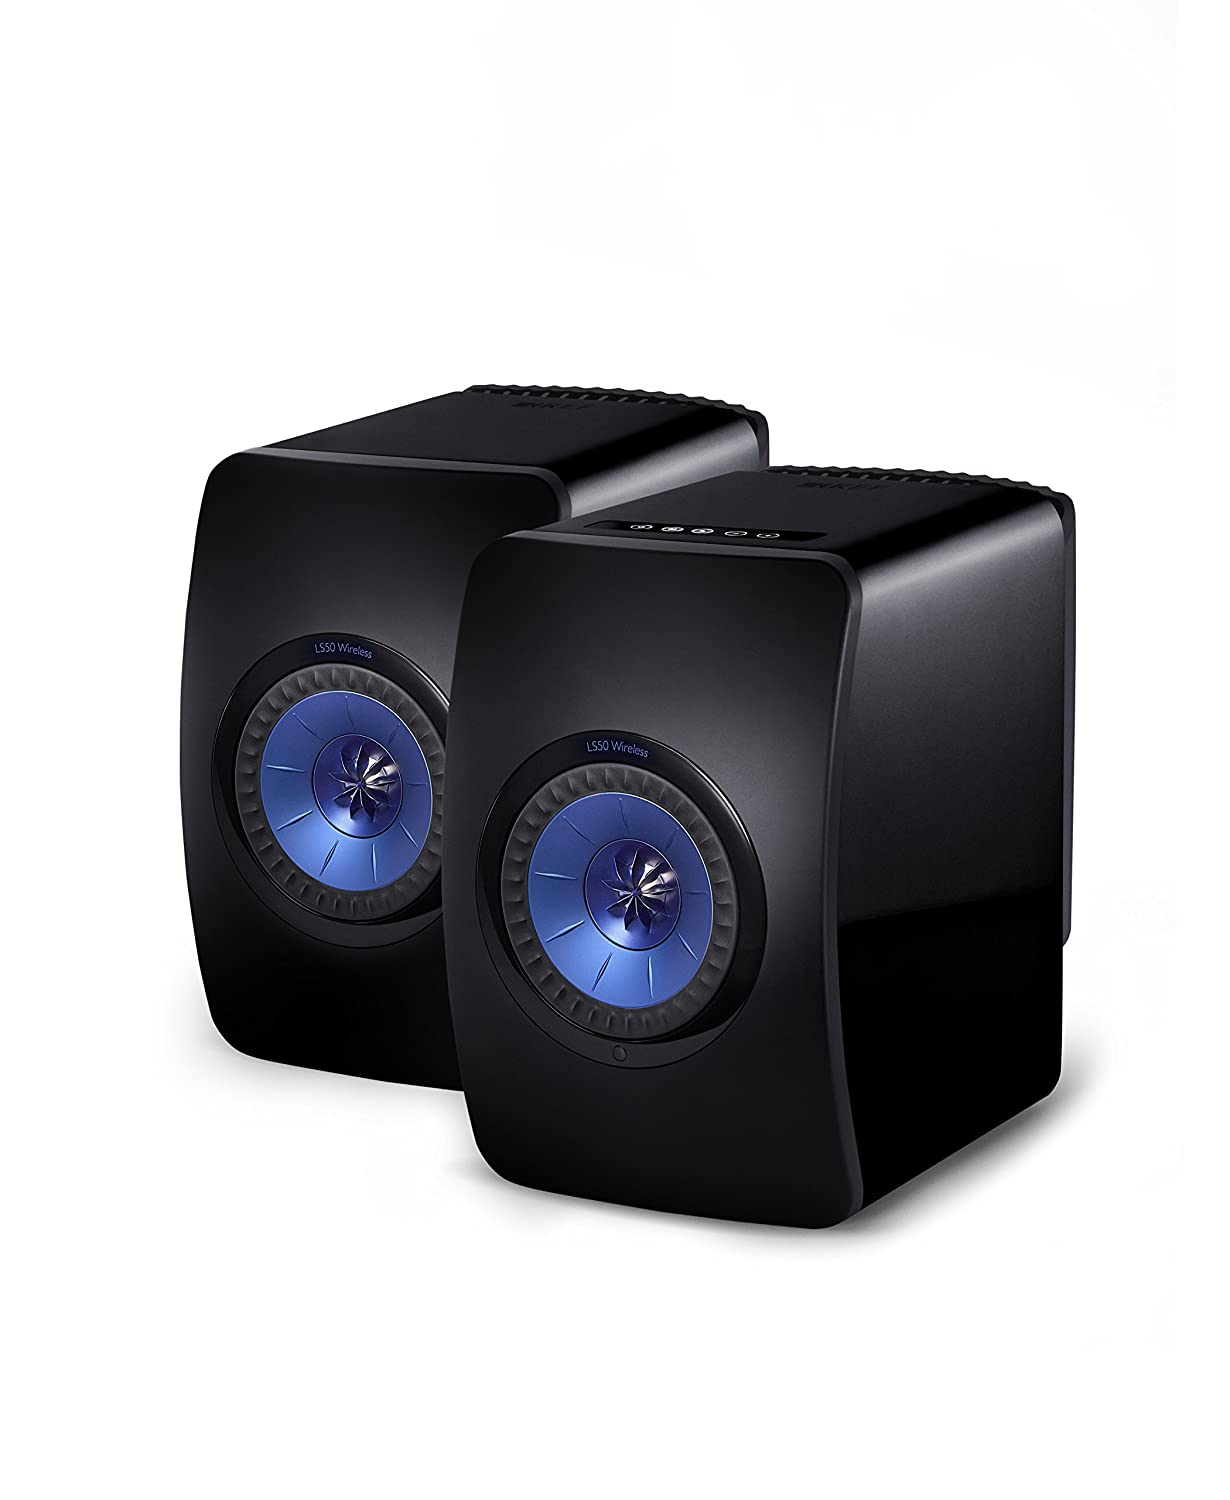 KEF LS50 Wireless Powered Music System Black Friday Deals 2020